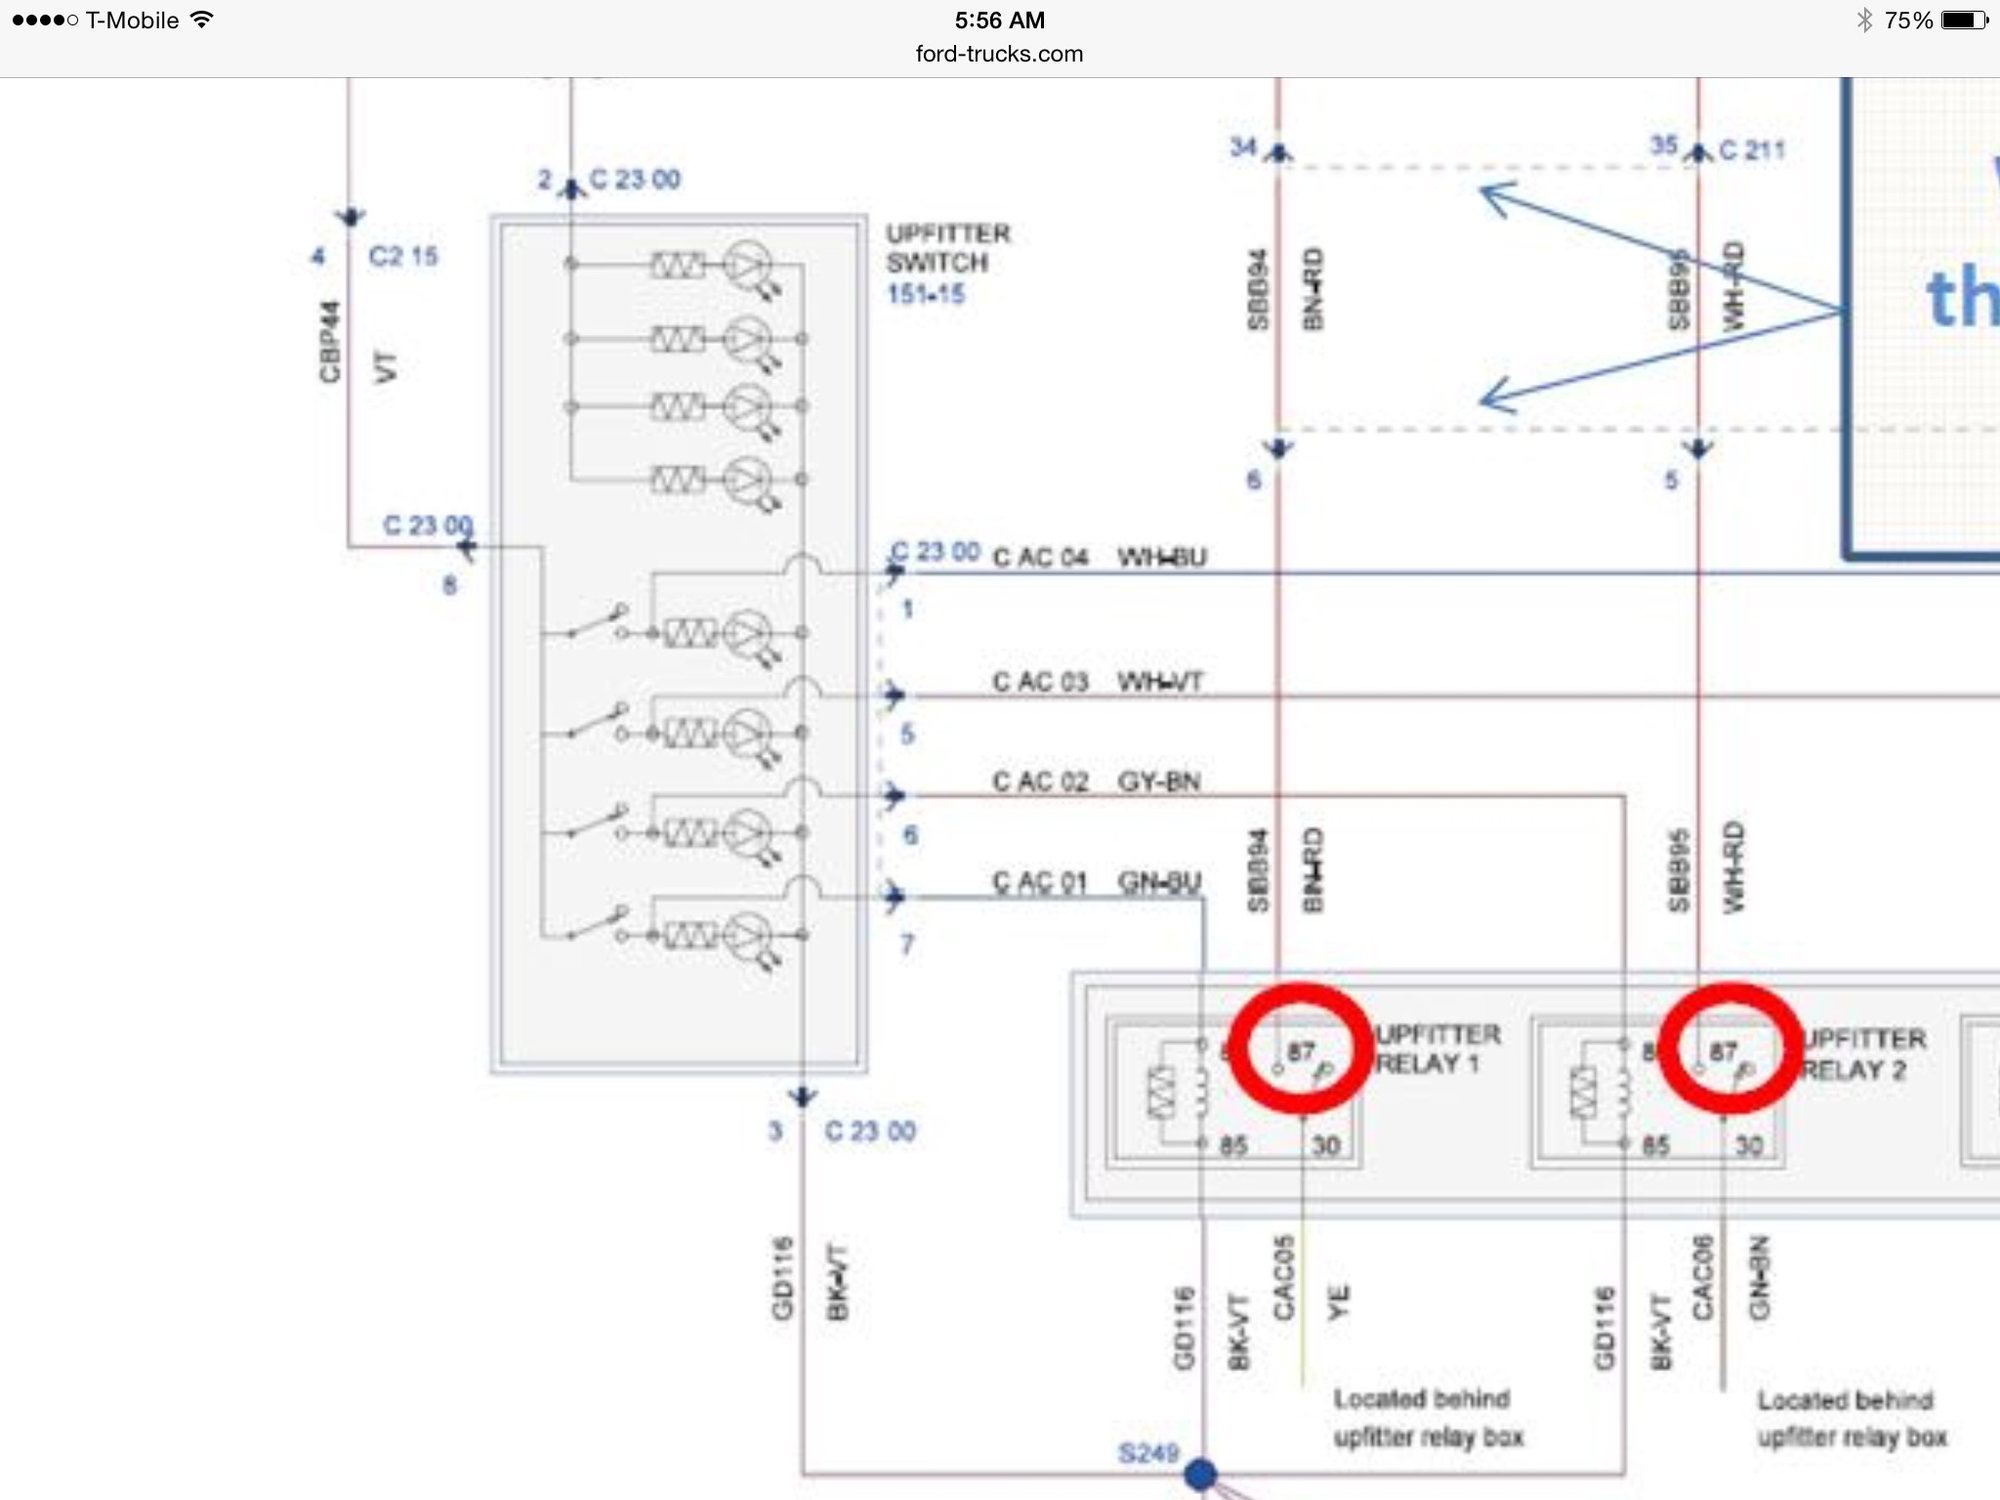 2015 upfitter wiring diagram help f250 ford truck 2004 f250 radio wiring diagram 2004 f250 radio wiring diagram 2004 f250 radio wiring diagram 2004 f250 radio wiring diagram